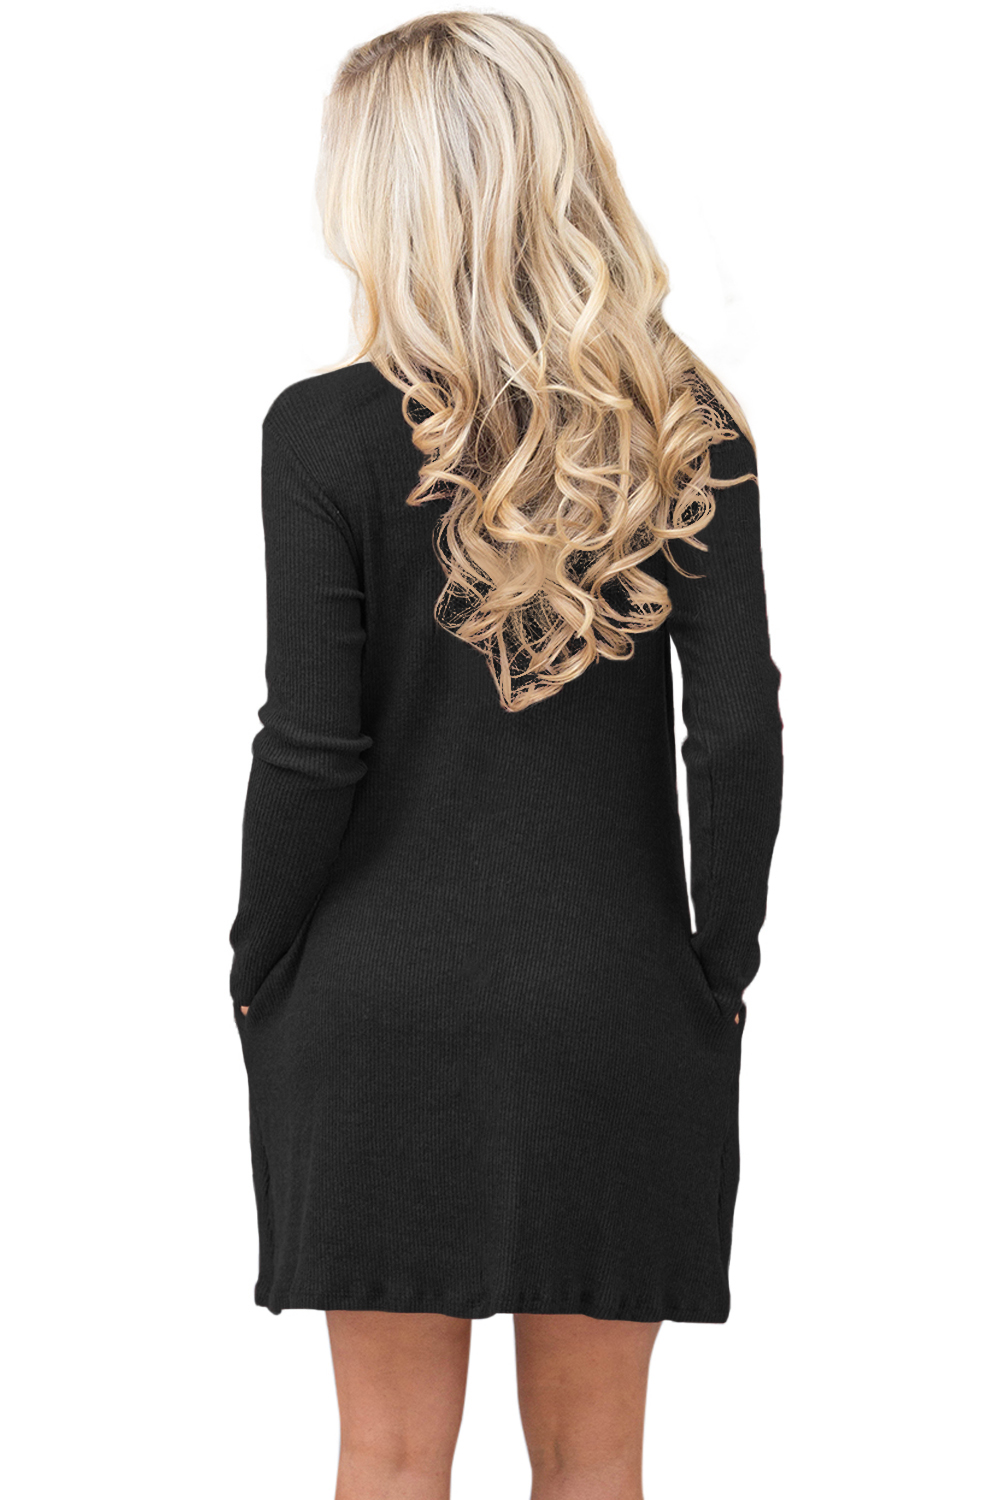 BY27712-2 Black High Neck Long Sleeve Knit Sweater Dress